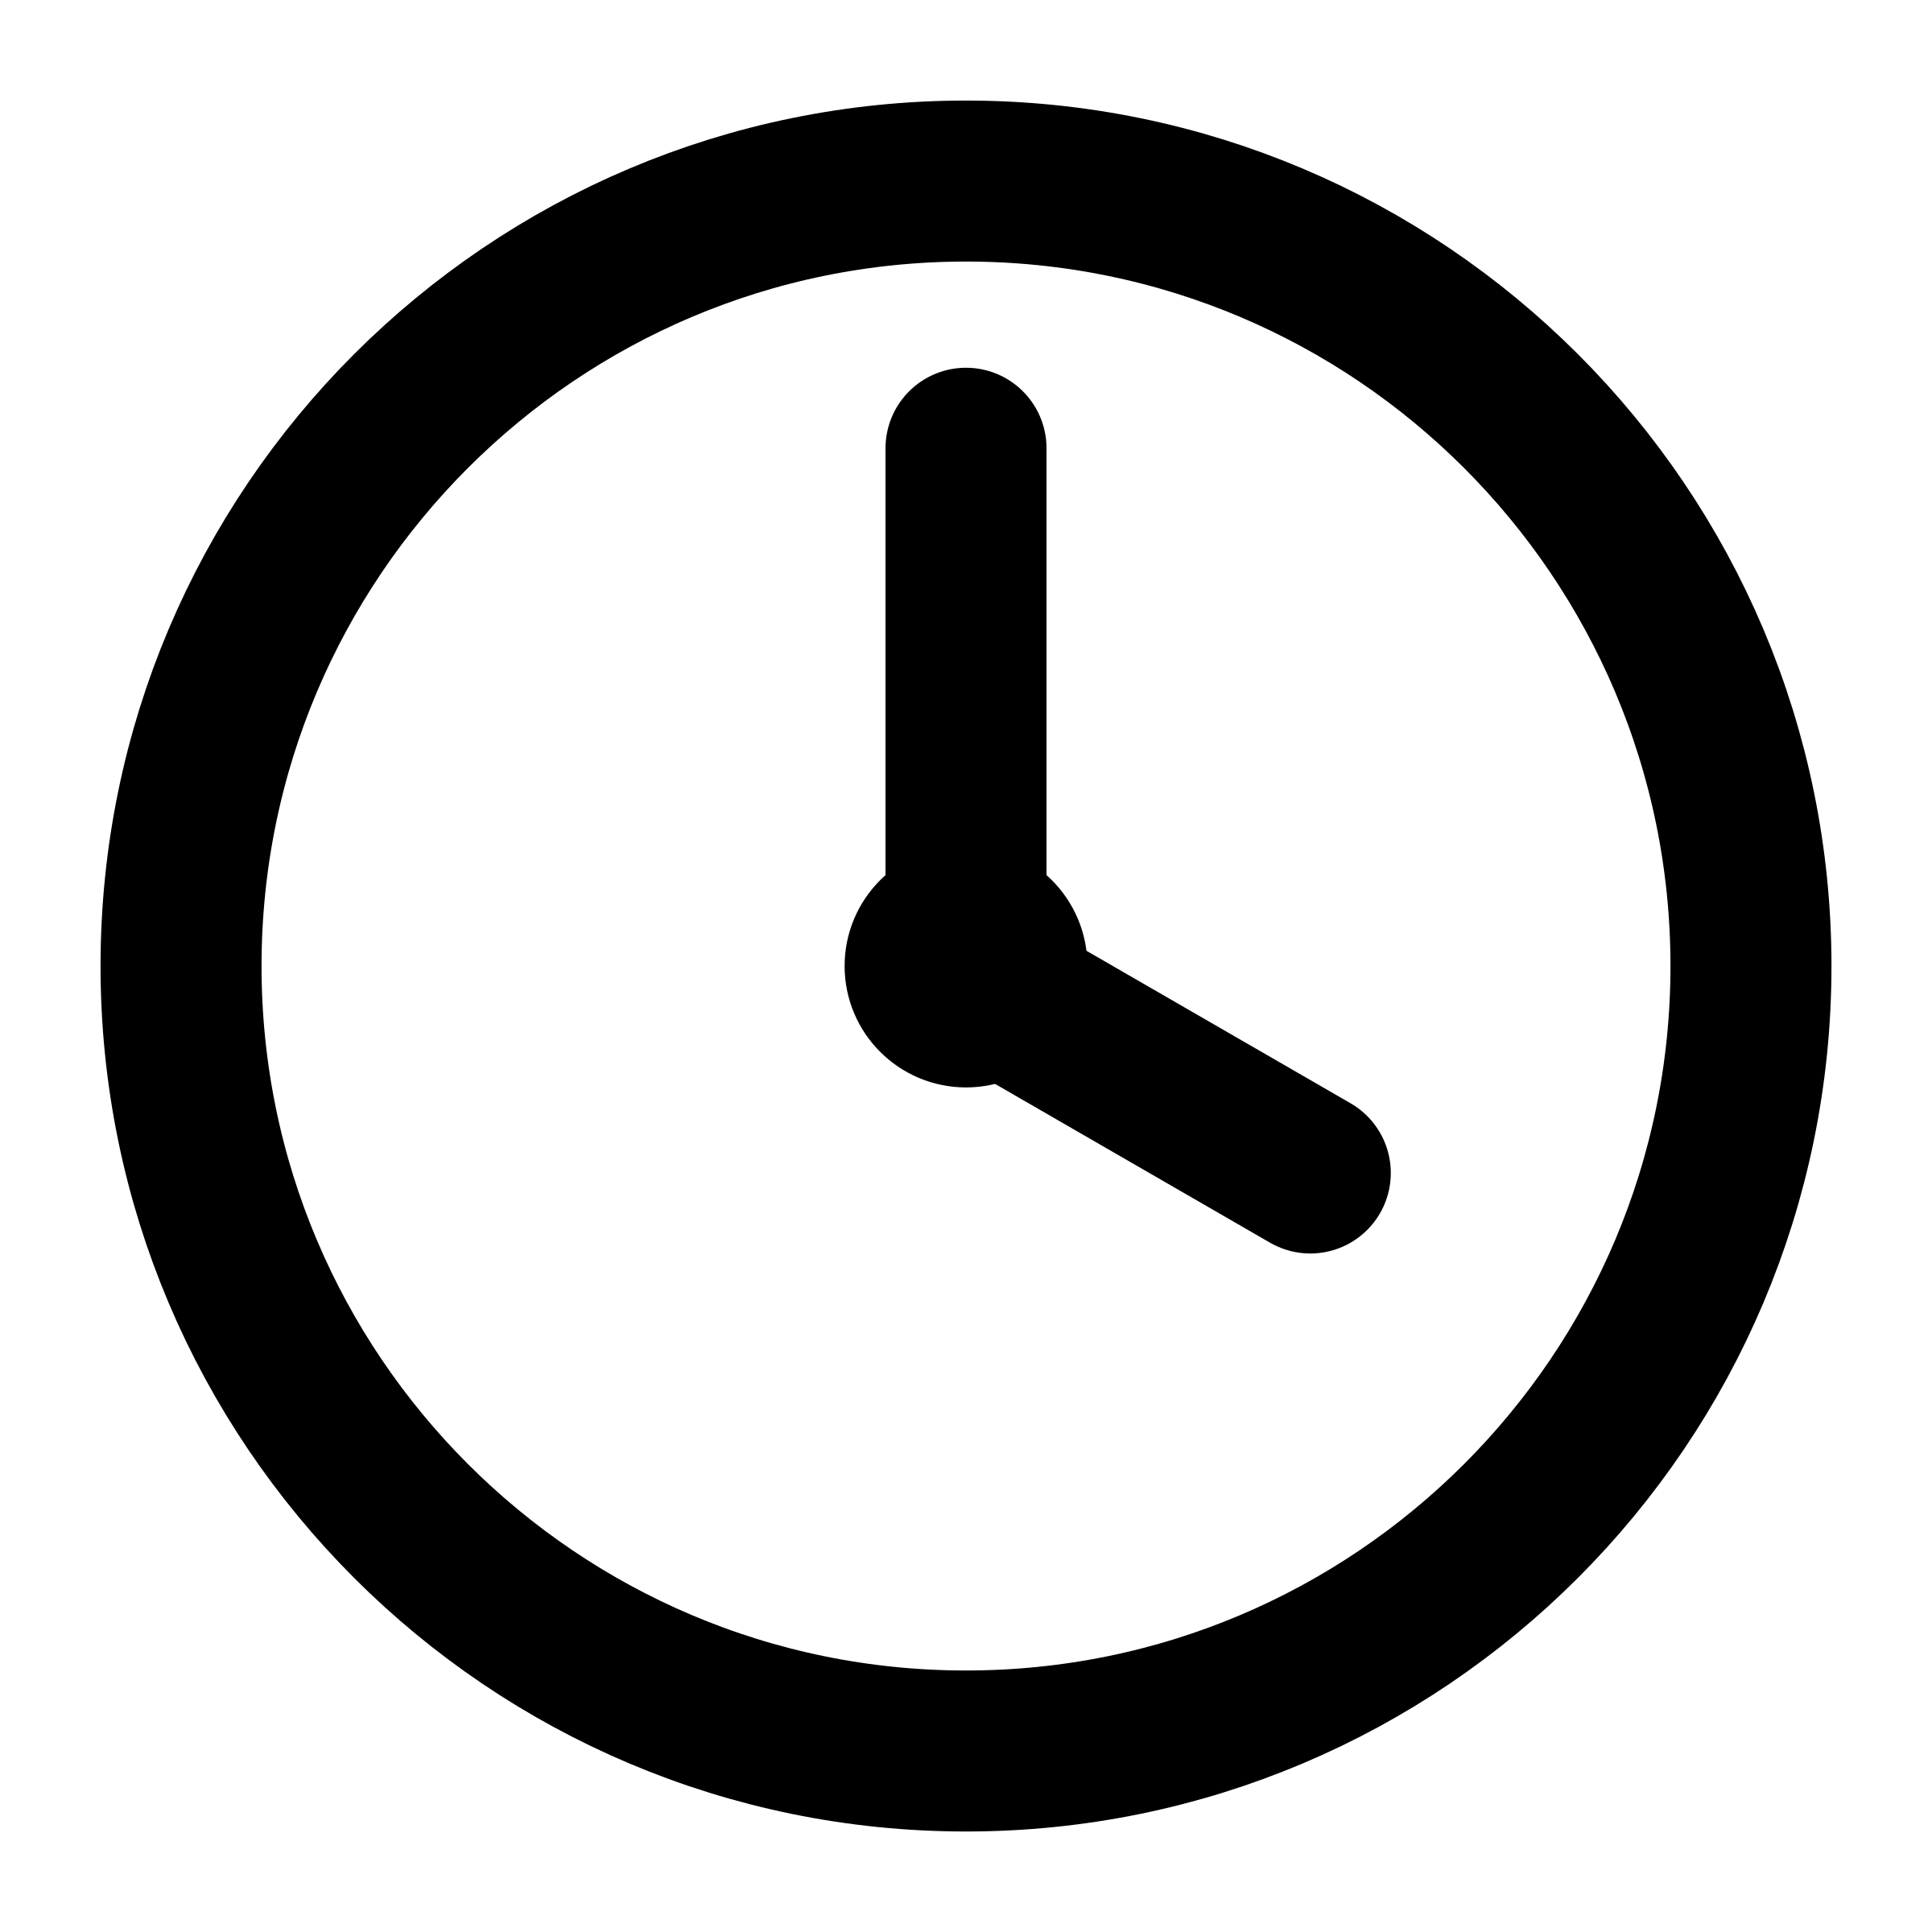 Clipart mono tool timer - Timer Clip Art